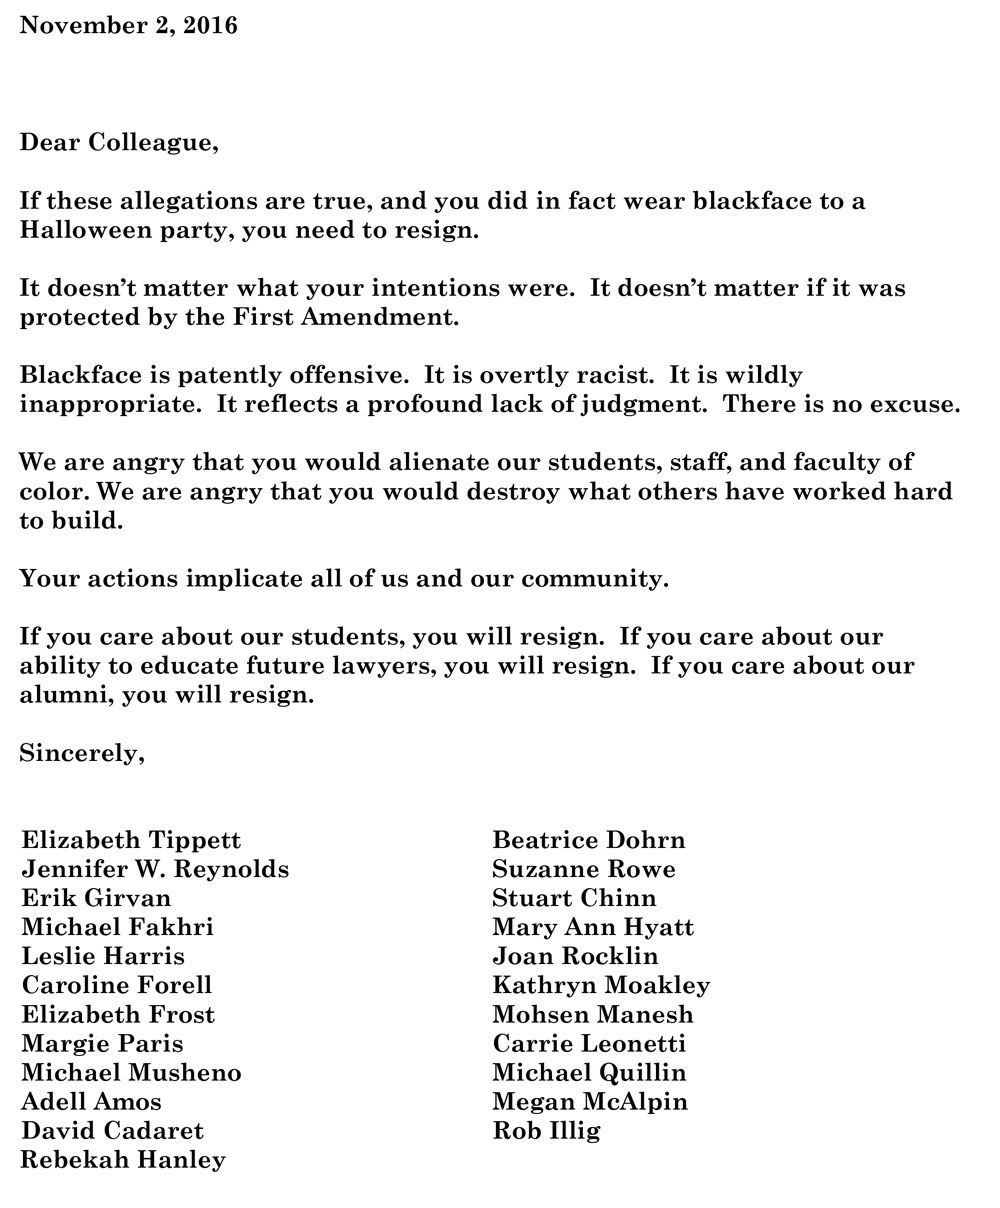 "On Thursday morning, more than 20 law school faculty members released an open letter calling blackface ""patently offensive"" and ""overtly racist,"" saying there is ""no excuse"" and demanding their colleague's resignation."